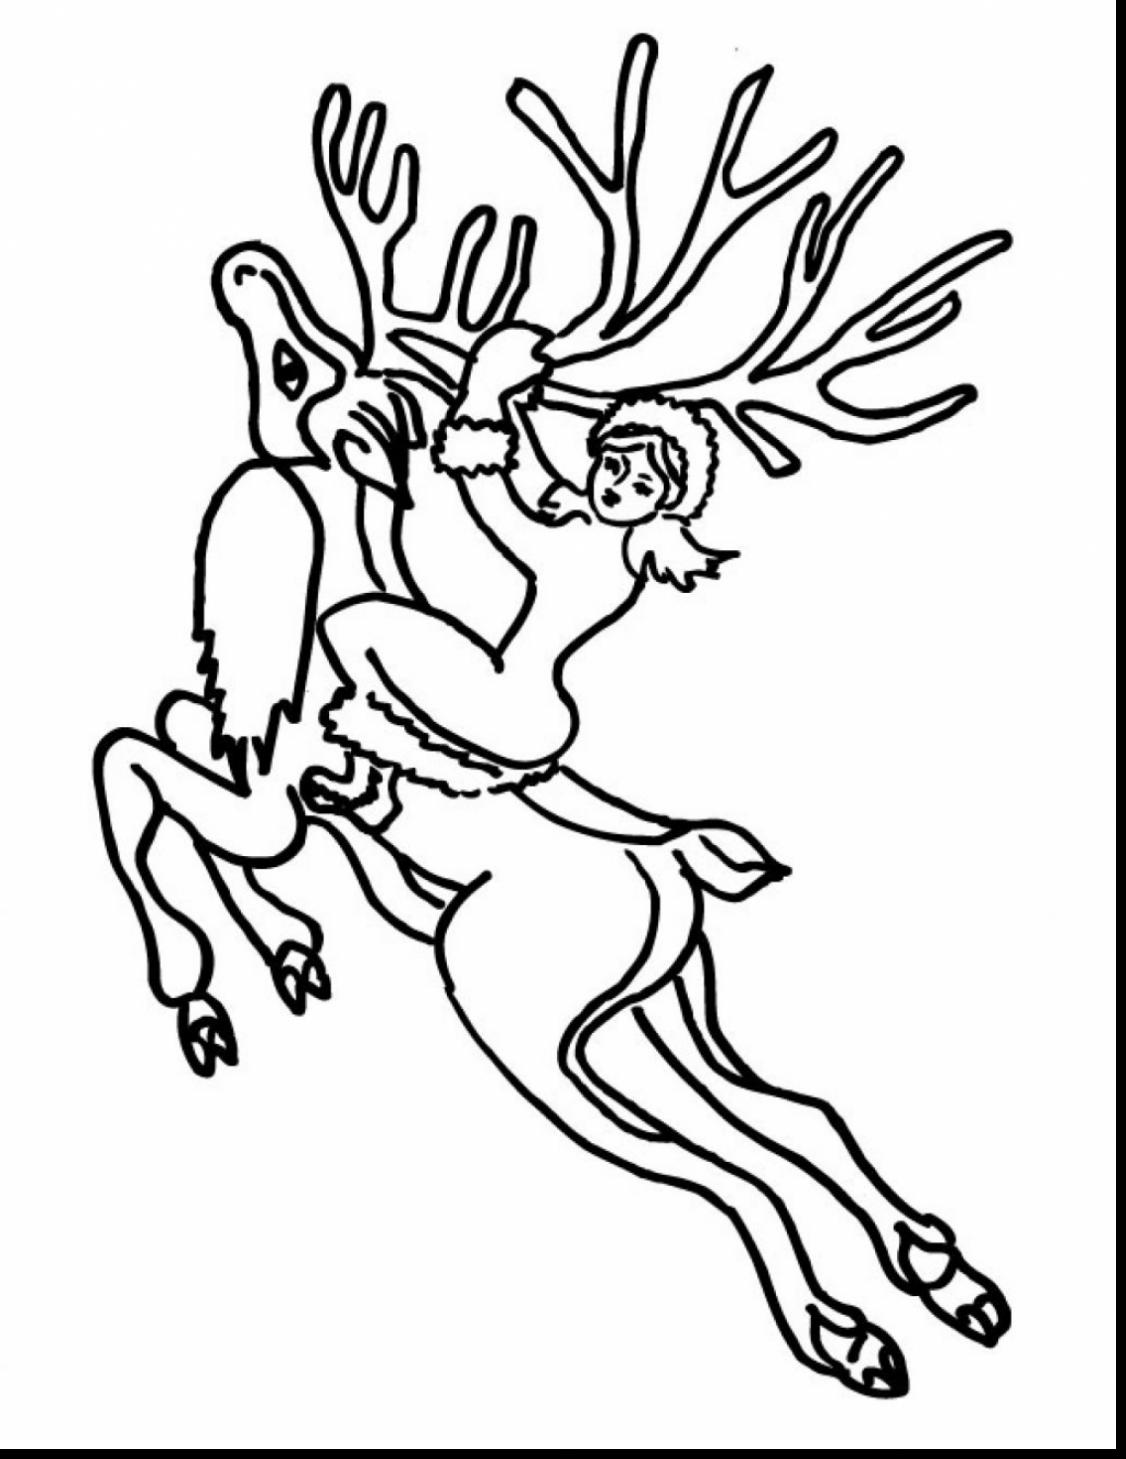 Flying Reindeer Drawing at GetDrawings.com | Free for personal use ...